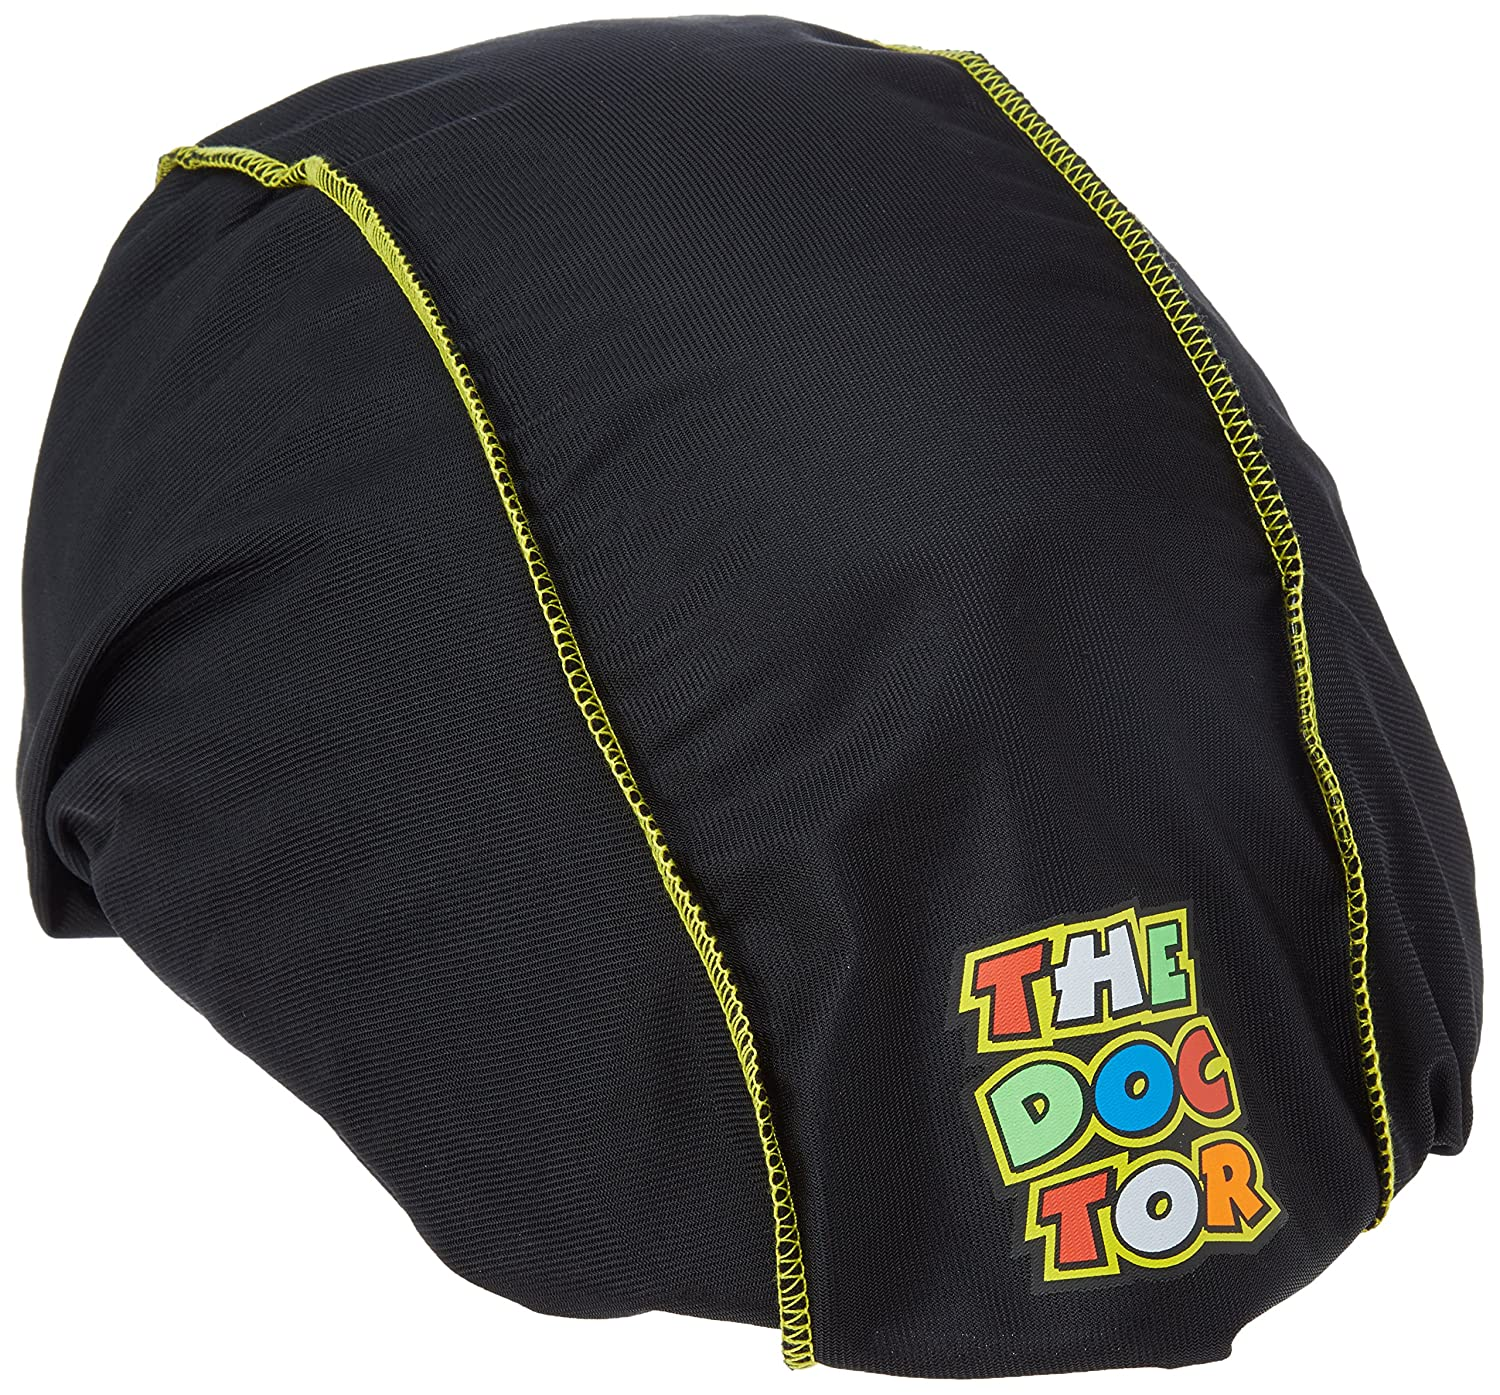 VR|46 Apparel VRUHB113004 Multicolor One Size Valentino Rossi Helmet Bag